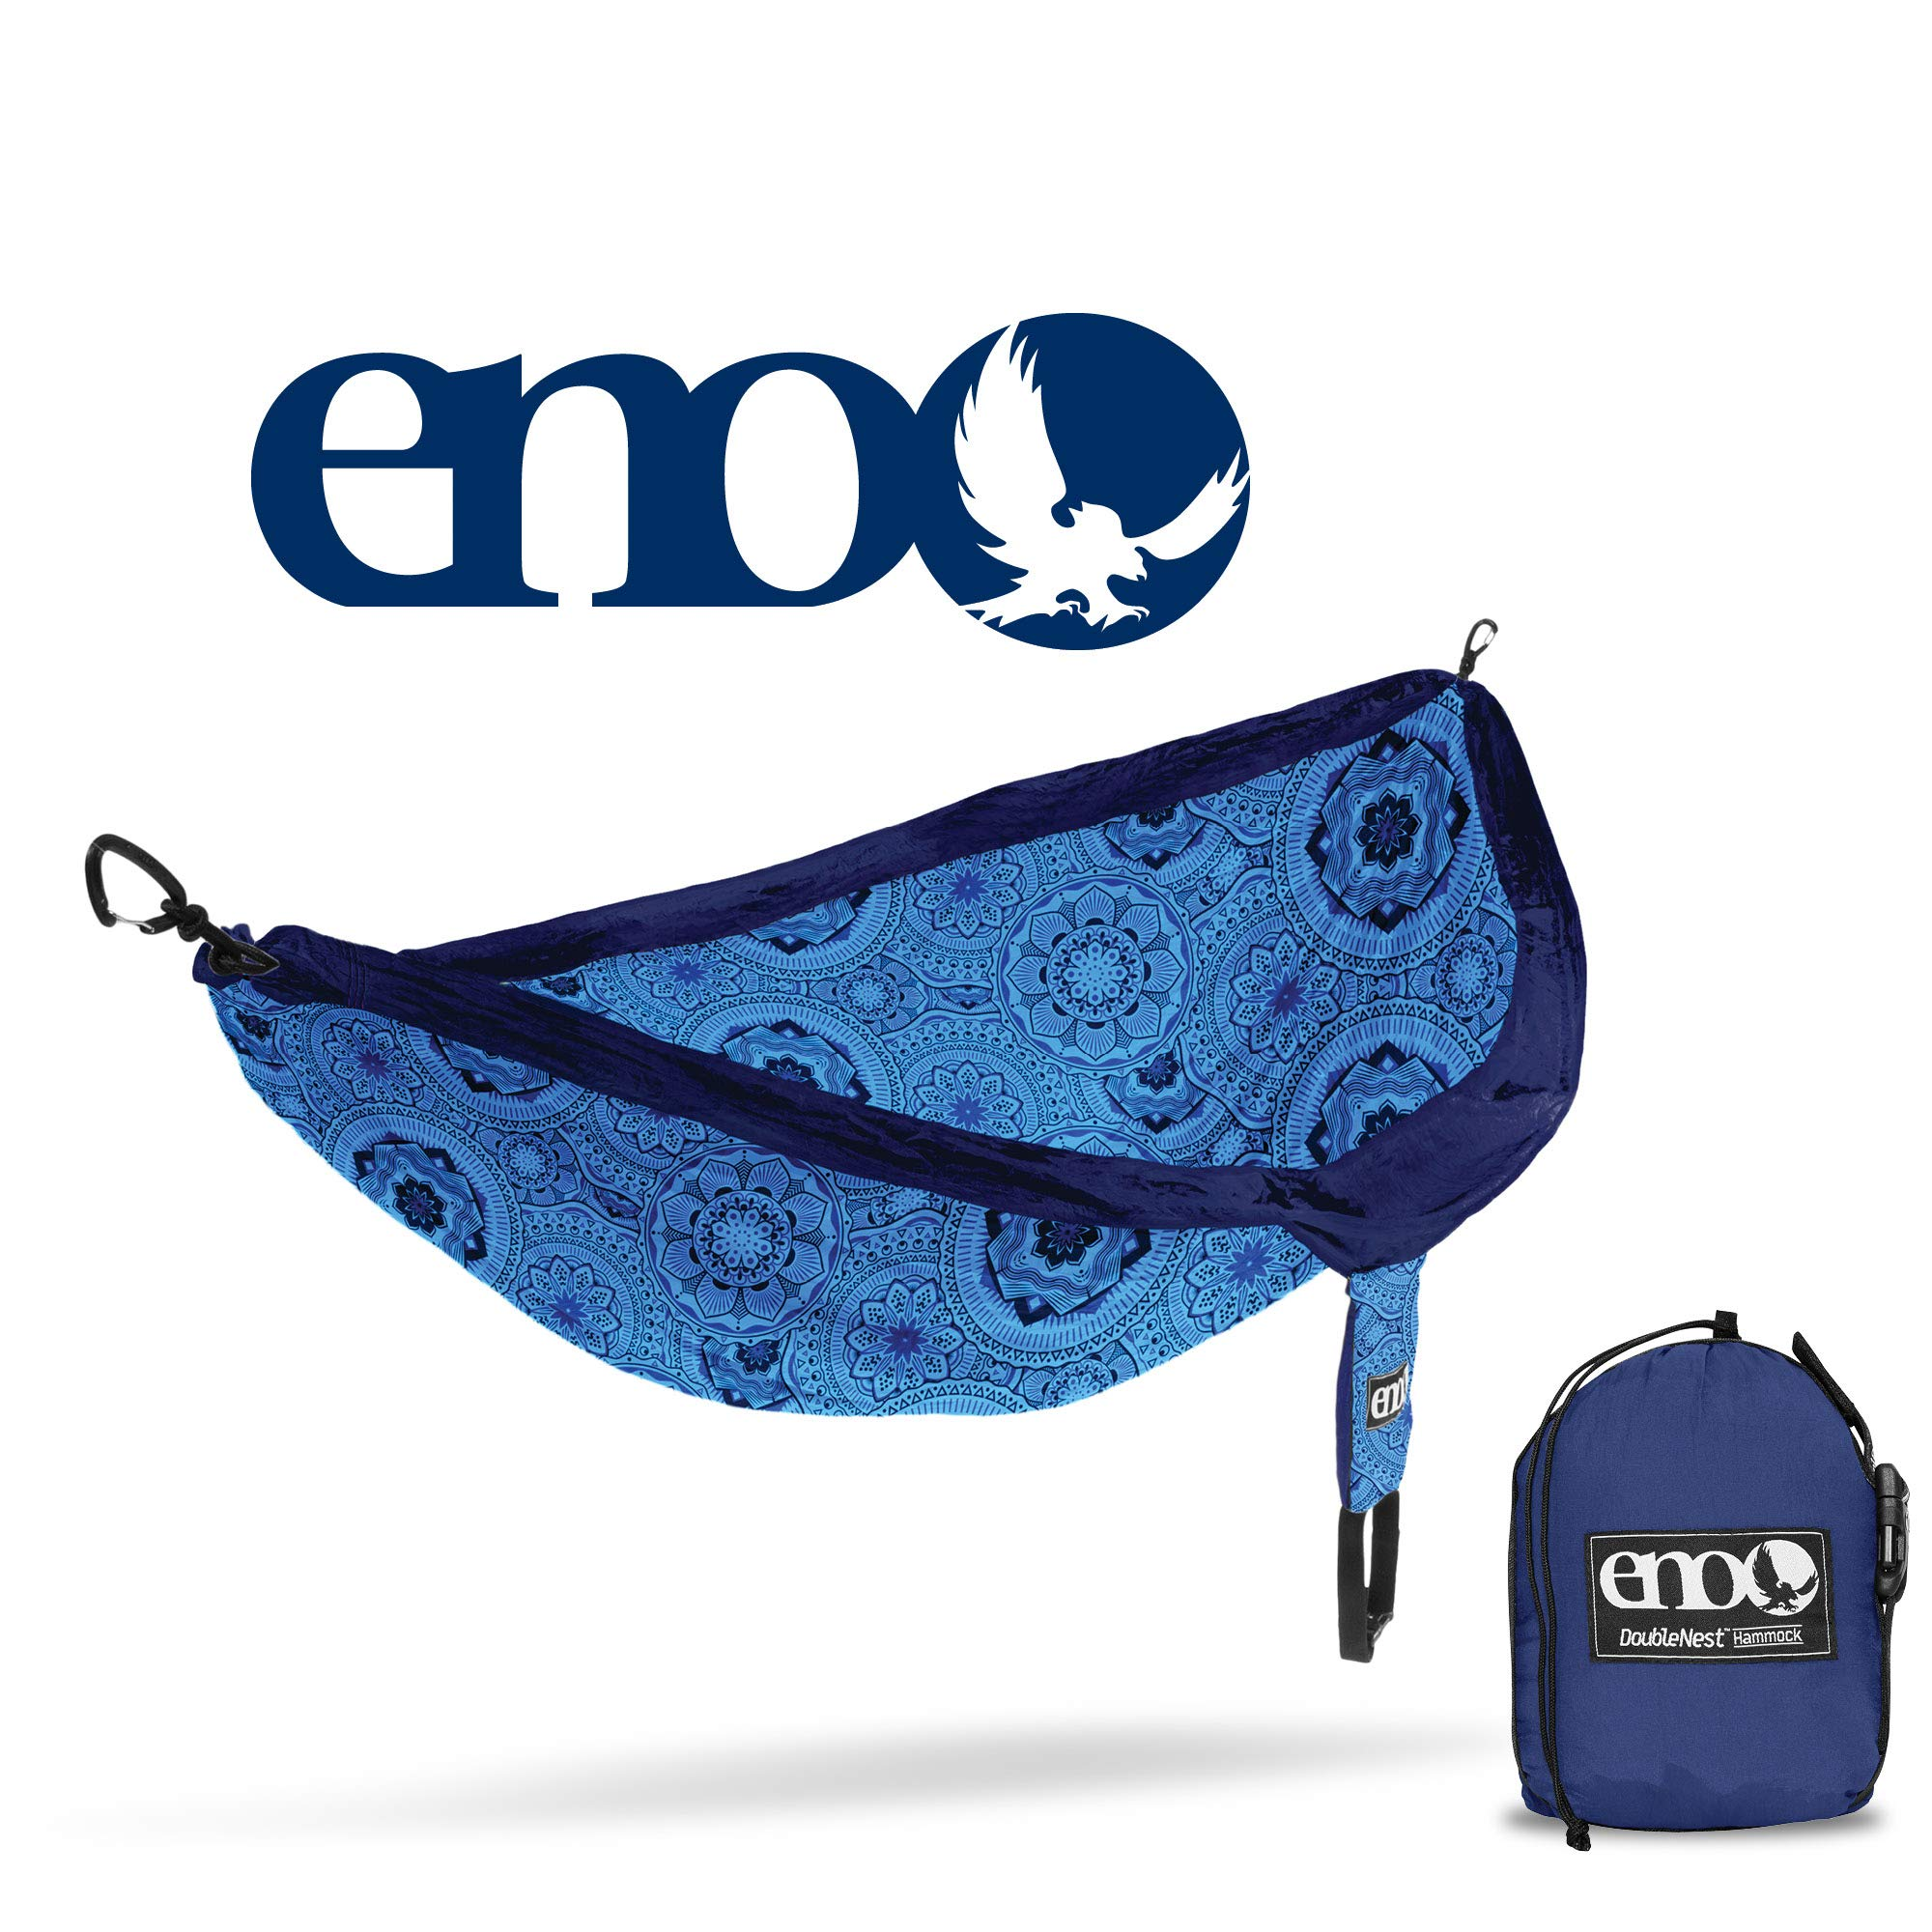 ENO - Eagles Nest Outfitters DoubleNest Print Portable Hammock for Two, Blue Mantra       by ENO